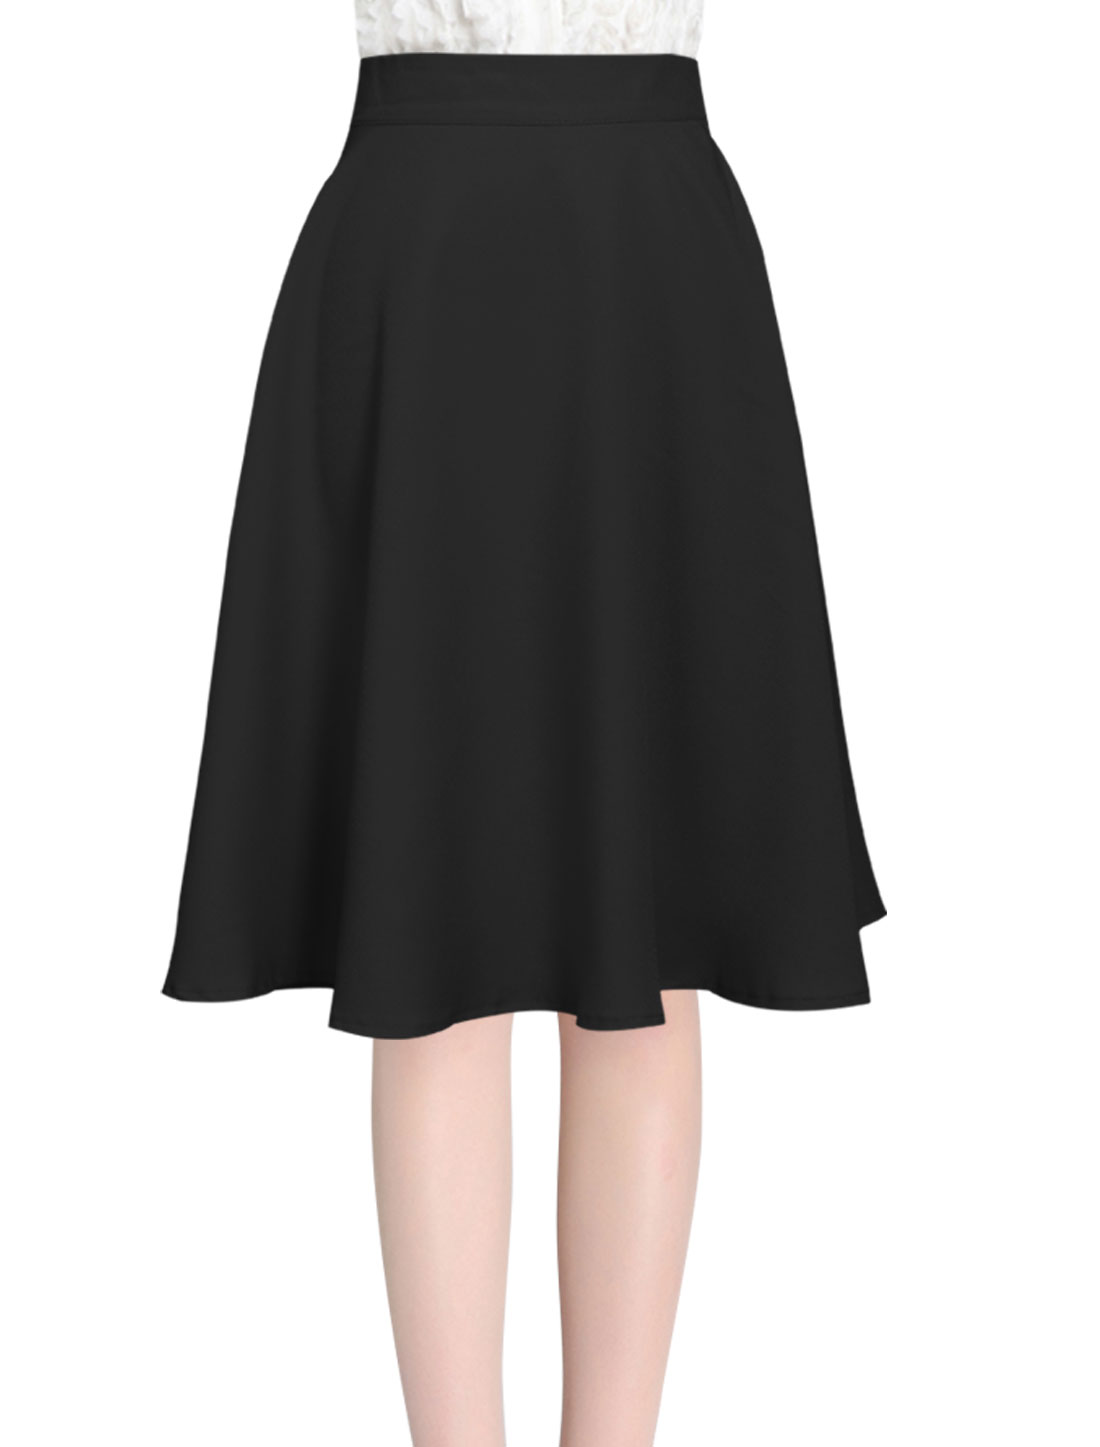 Knee Length Round Hem Stylish Full Skirt for Ladies Black S